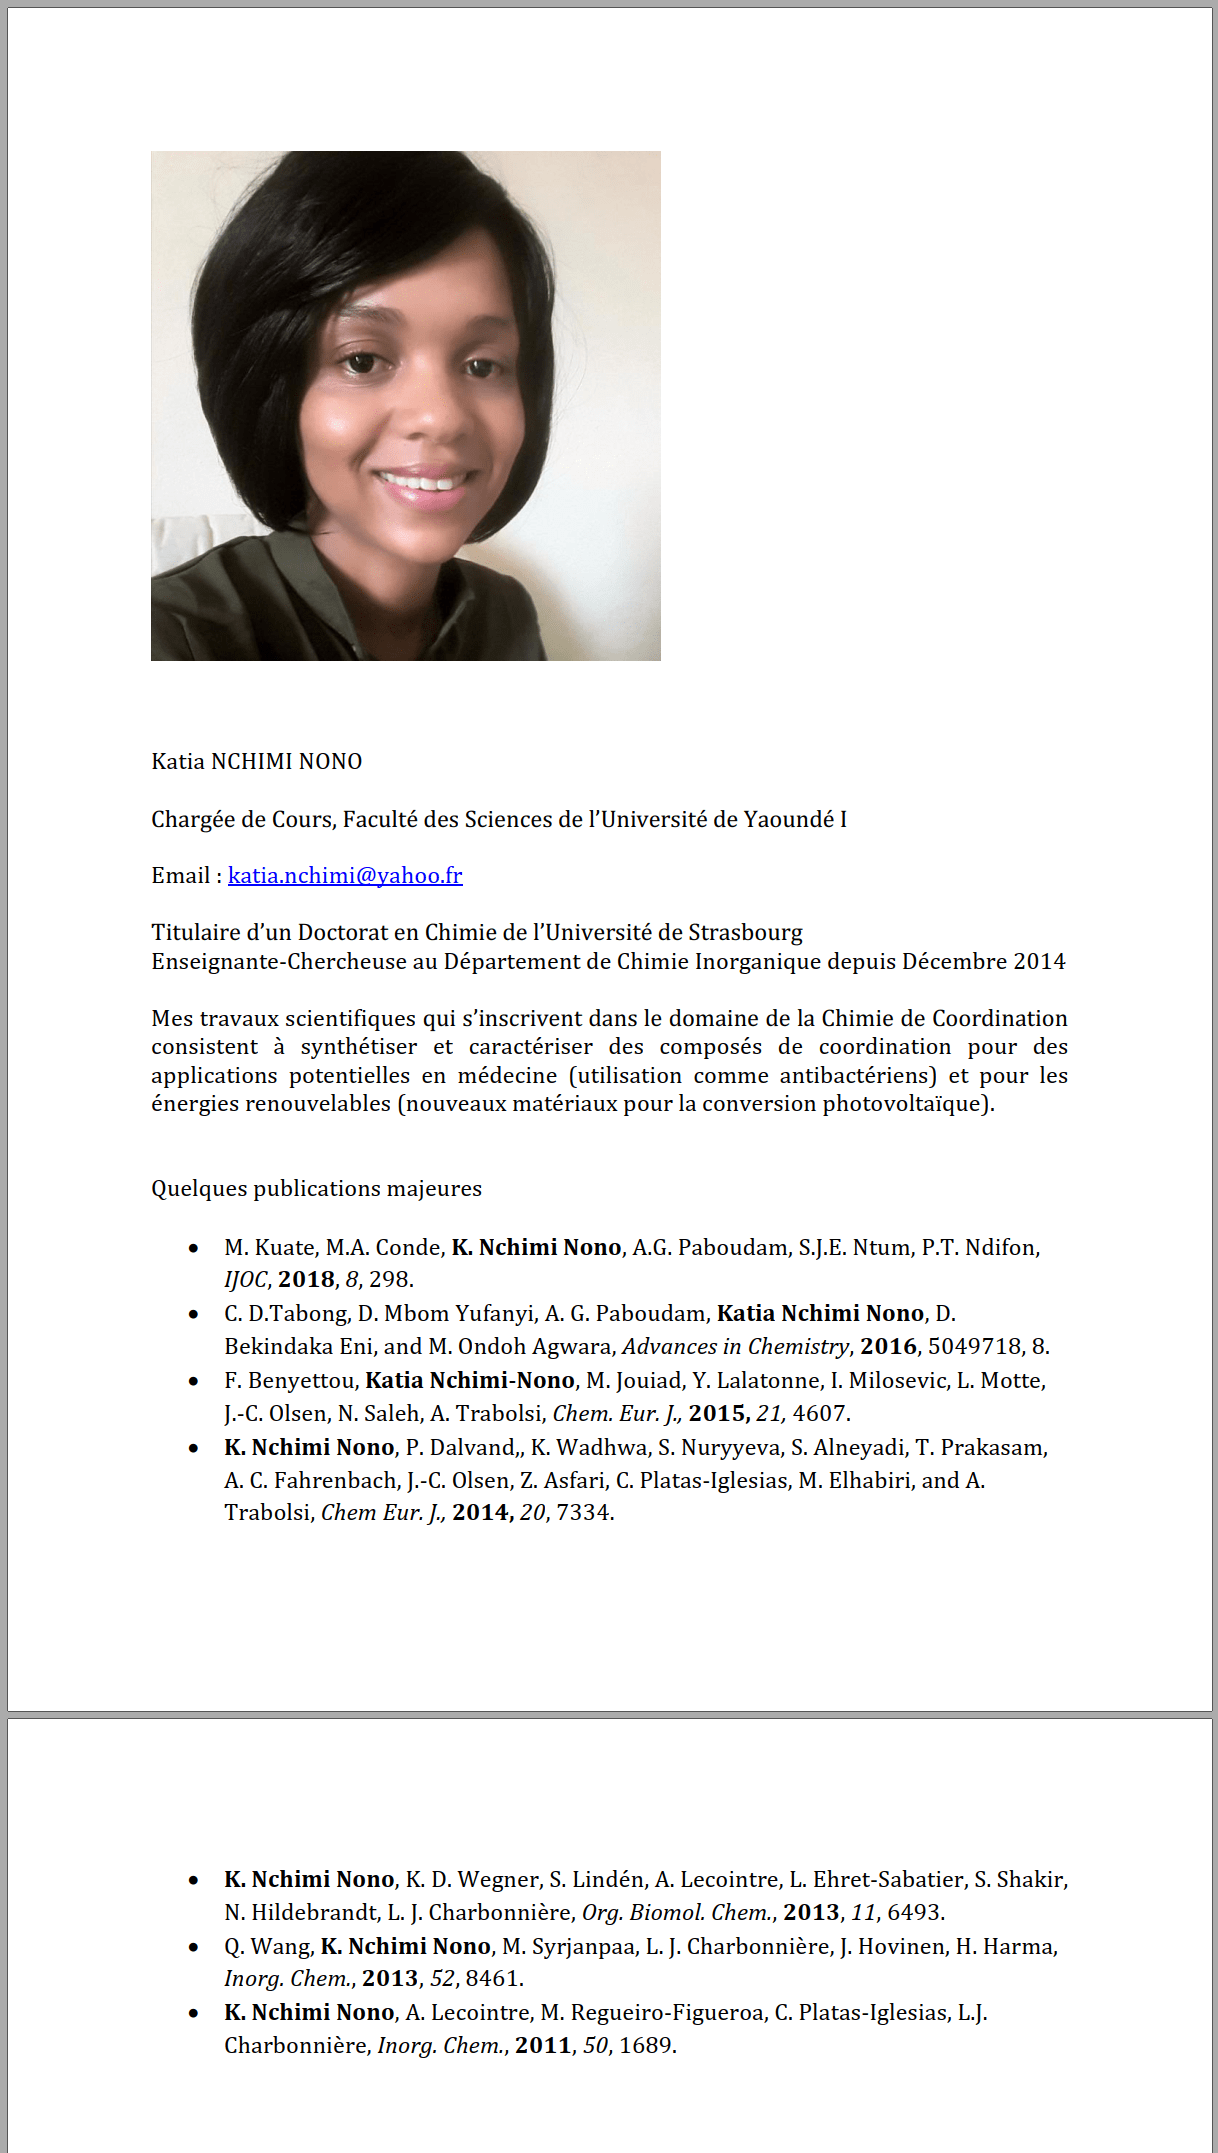 katia nchimi nono  u2013 faculty of sciences